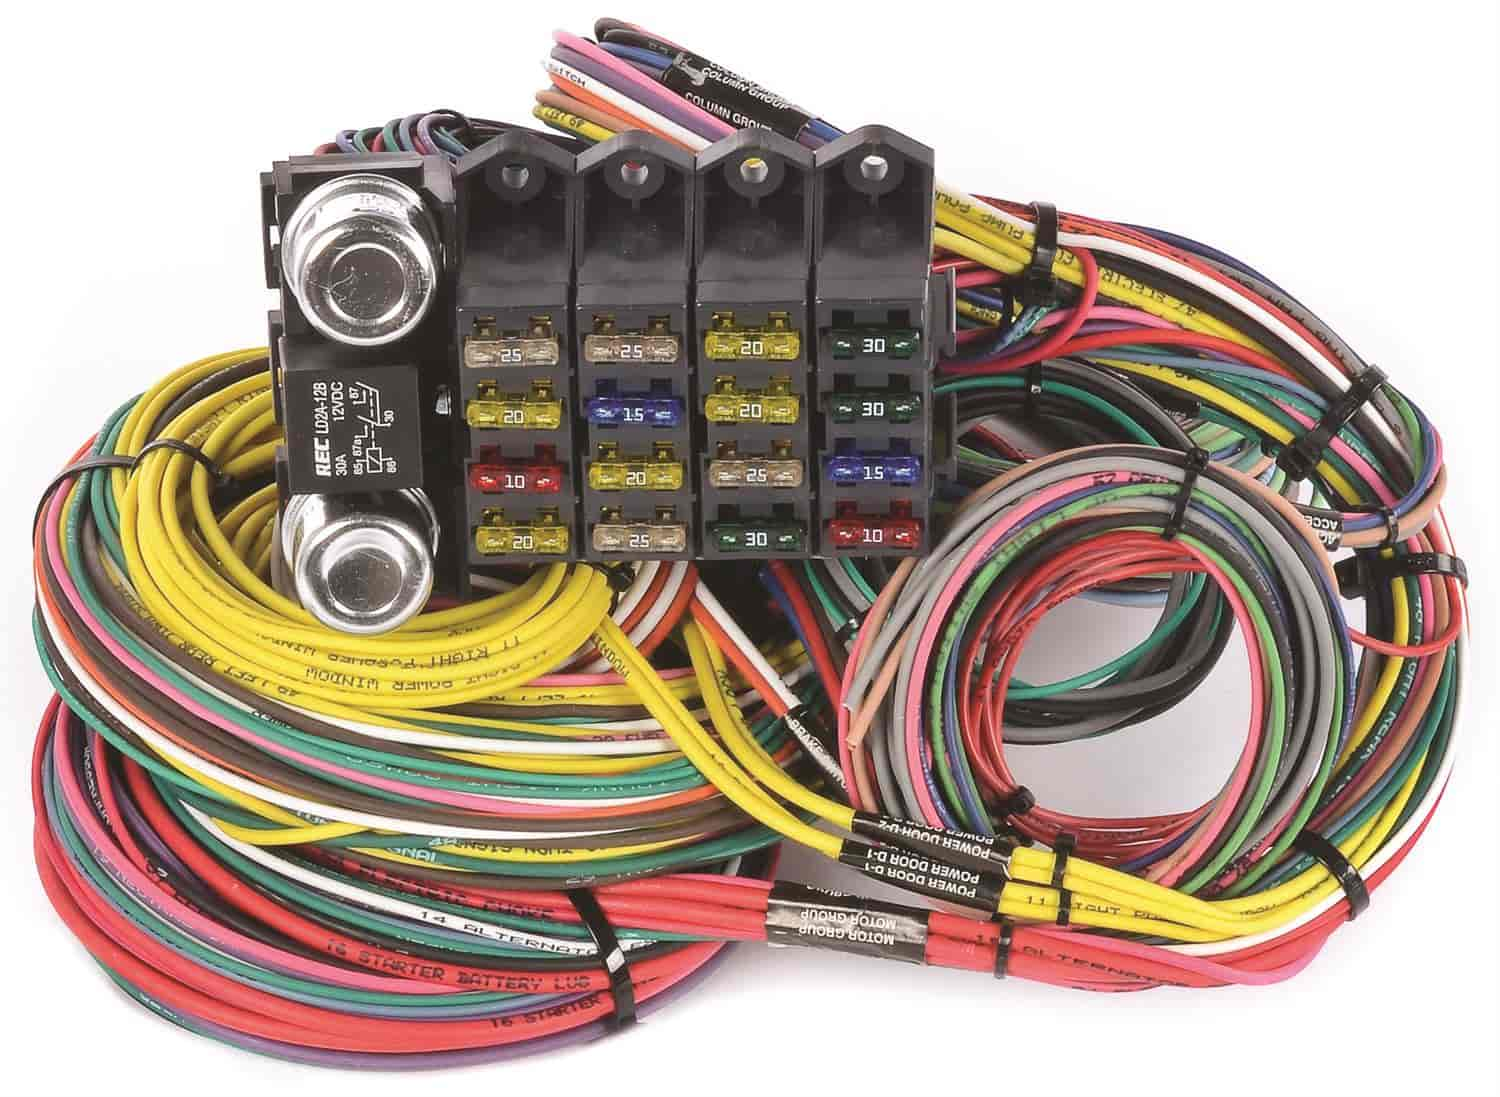 555 10405 jegs performance products 10405 universal wiring harness, 20 GM Turn Signal Wiring at crackthecode.co